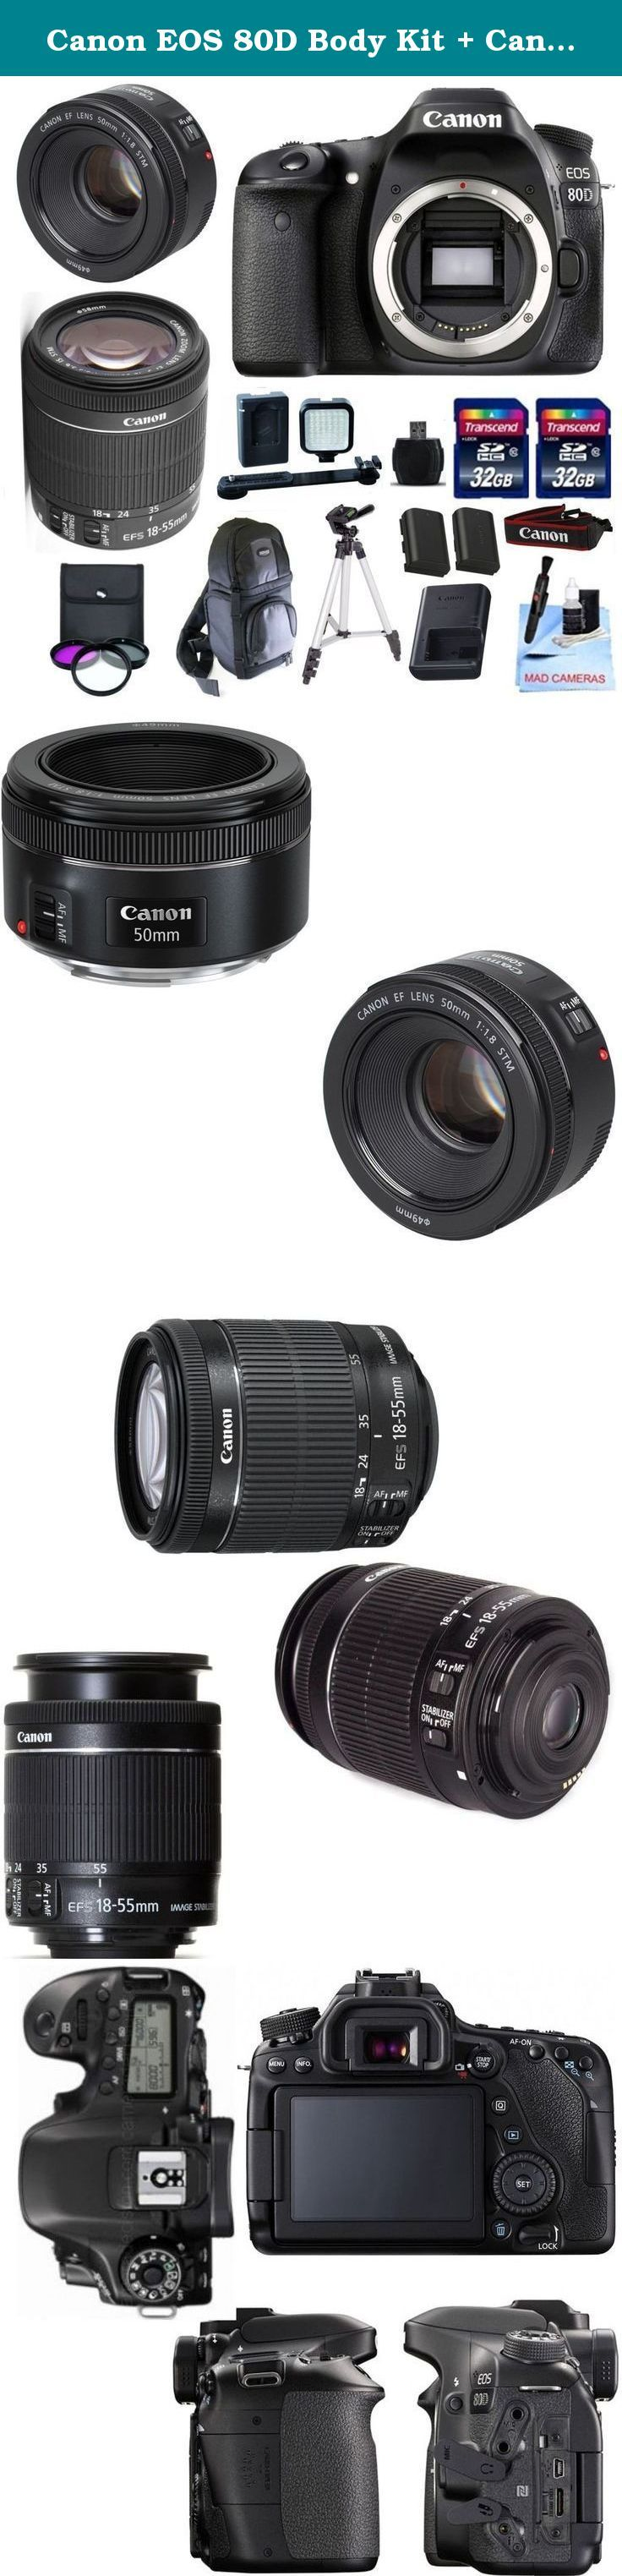 """Canon EOS 80D Body Kit + Canon 18-55mm IS STM + Canon 50mm 1.8 STM Video/ Portrait Lens + 2 32GB Transcend SD Memory Cards + LED Video Light Kit & More - International Version. The Canon EOS 80D DSLR Camera Features: 24.2MP APS-C CMOS Sensor DIGIC 6 Image Processor 3.0"""" 1.04m-Dot Vari-Angle Touchscreen Full HD 1080p Video Recording at 60 fps 45-Point All Cross-Type AF System Dual Pixel CMOS AF Expanded ISO 25600, Up to 7 fps Shooting Built-In Wi-Fi with NFC RGB+IR 7560-Pixel Metering…"""